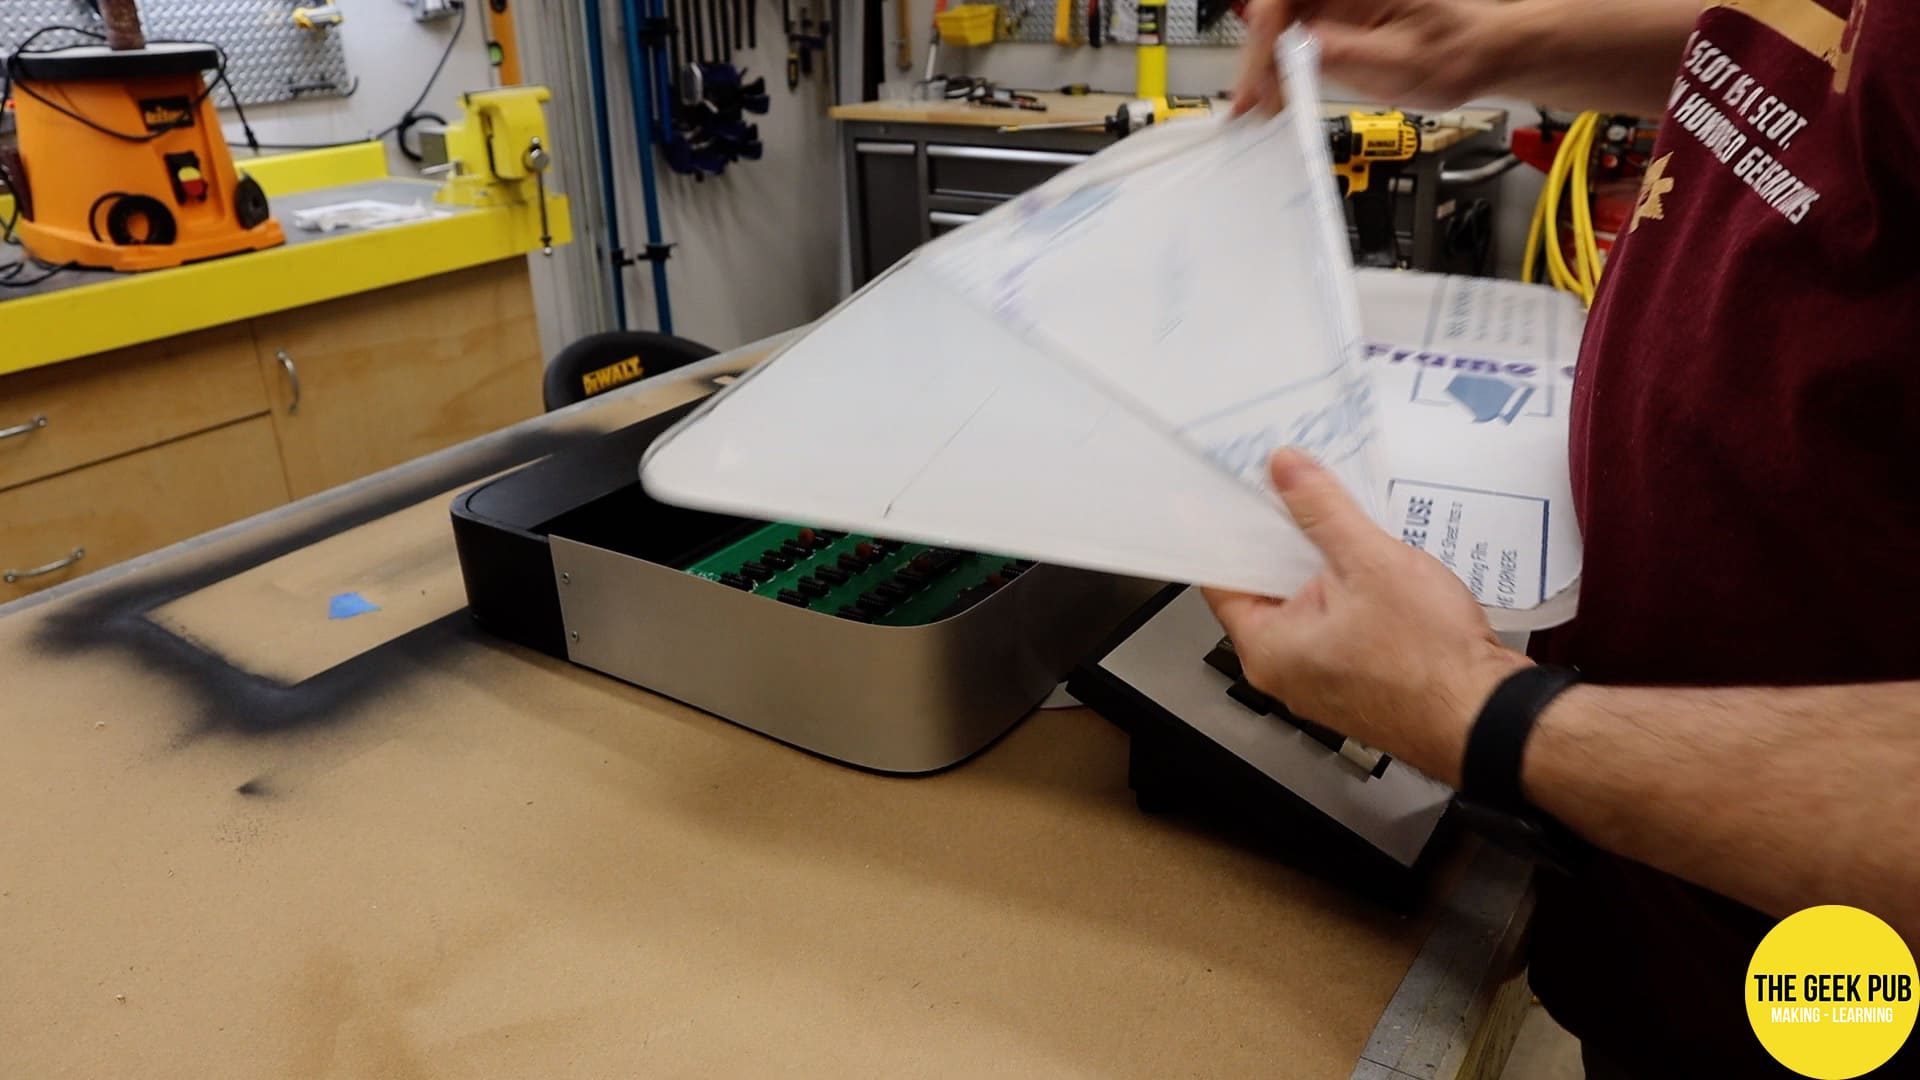 Removing the protective plastic sheet